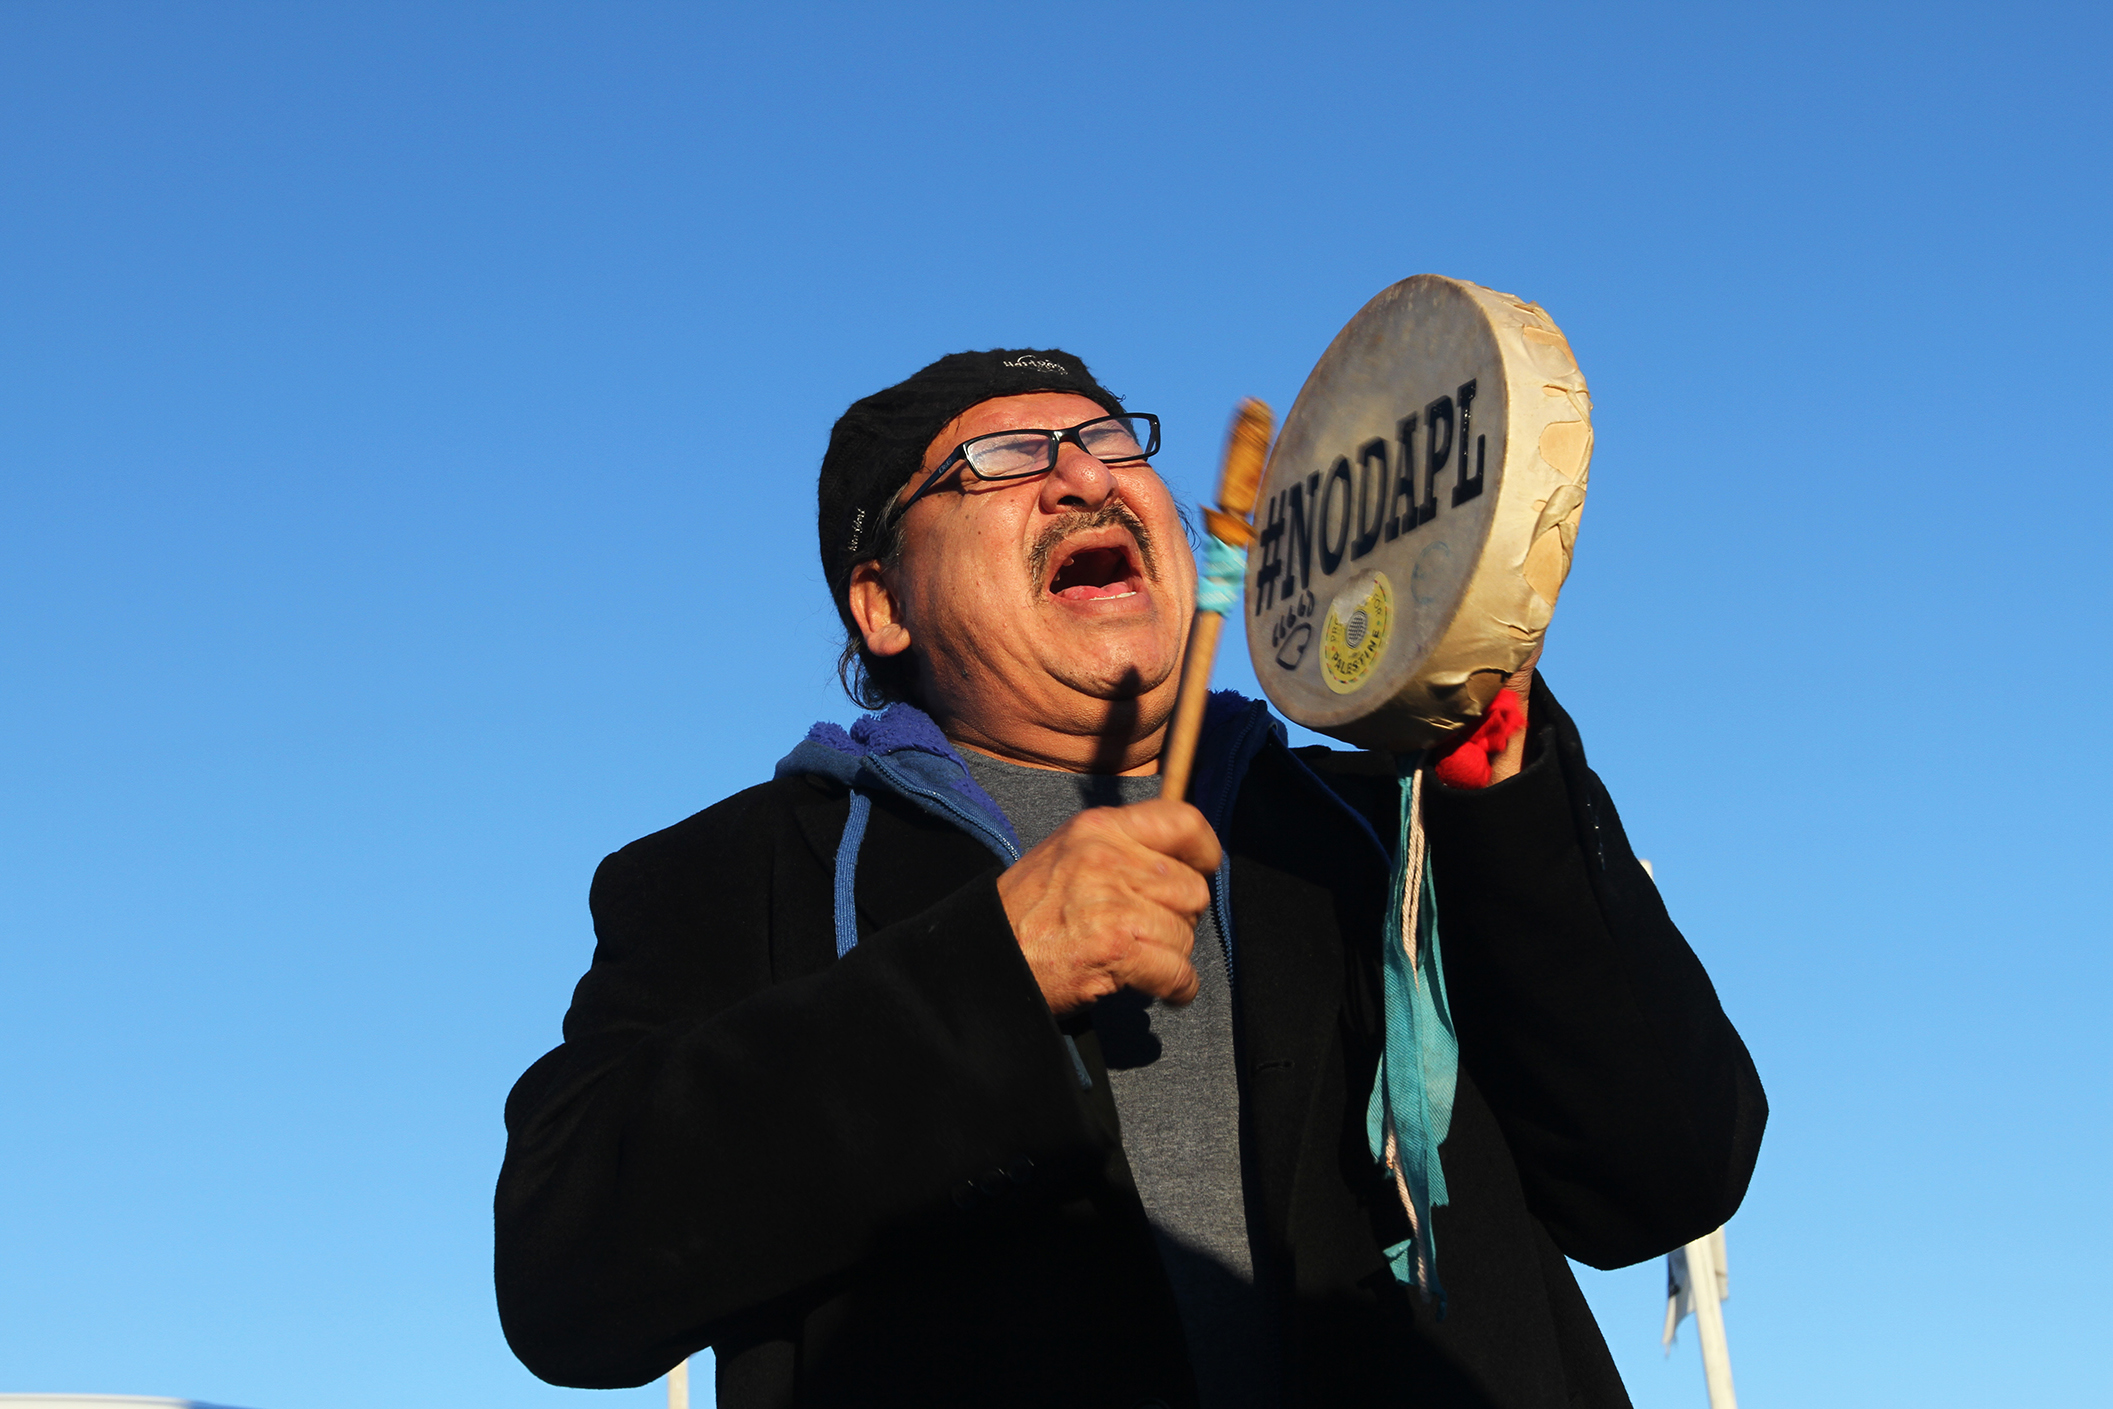 A man sings in celebration after the announcement that the Army Corps denied DAPL drilling permits.